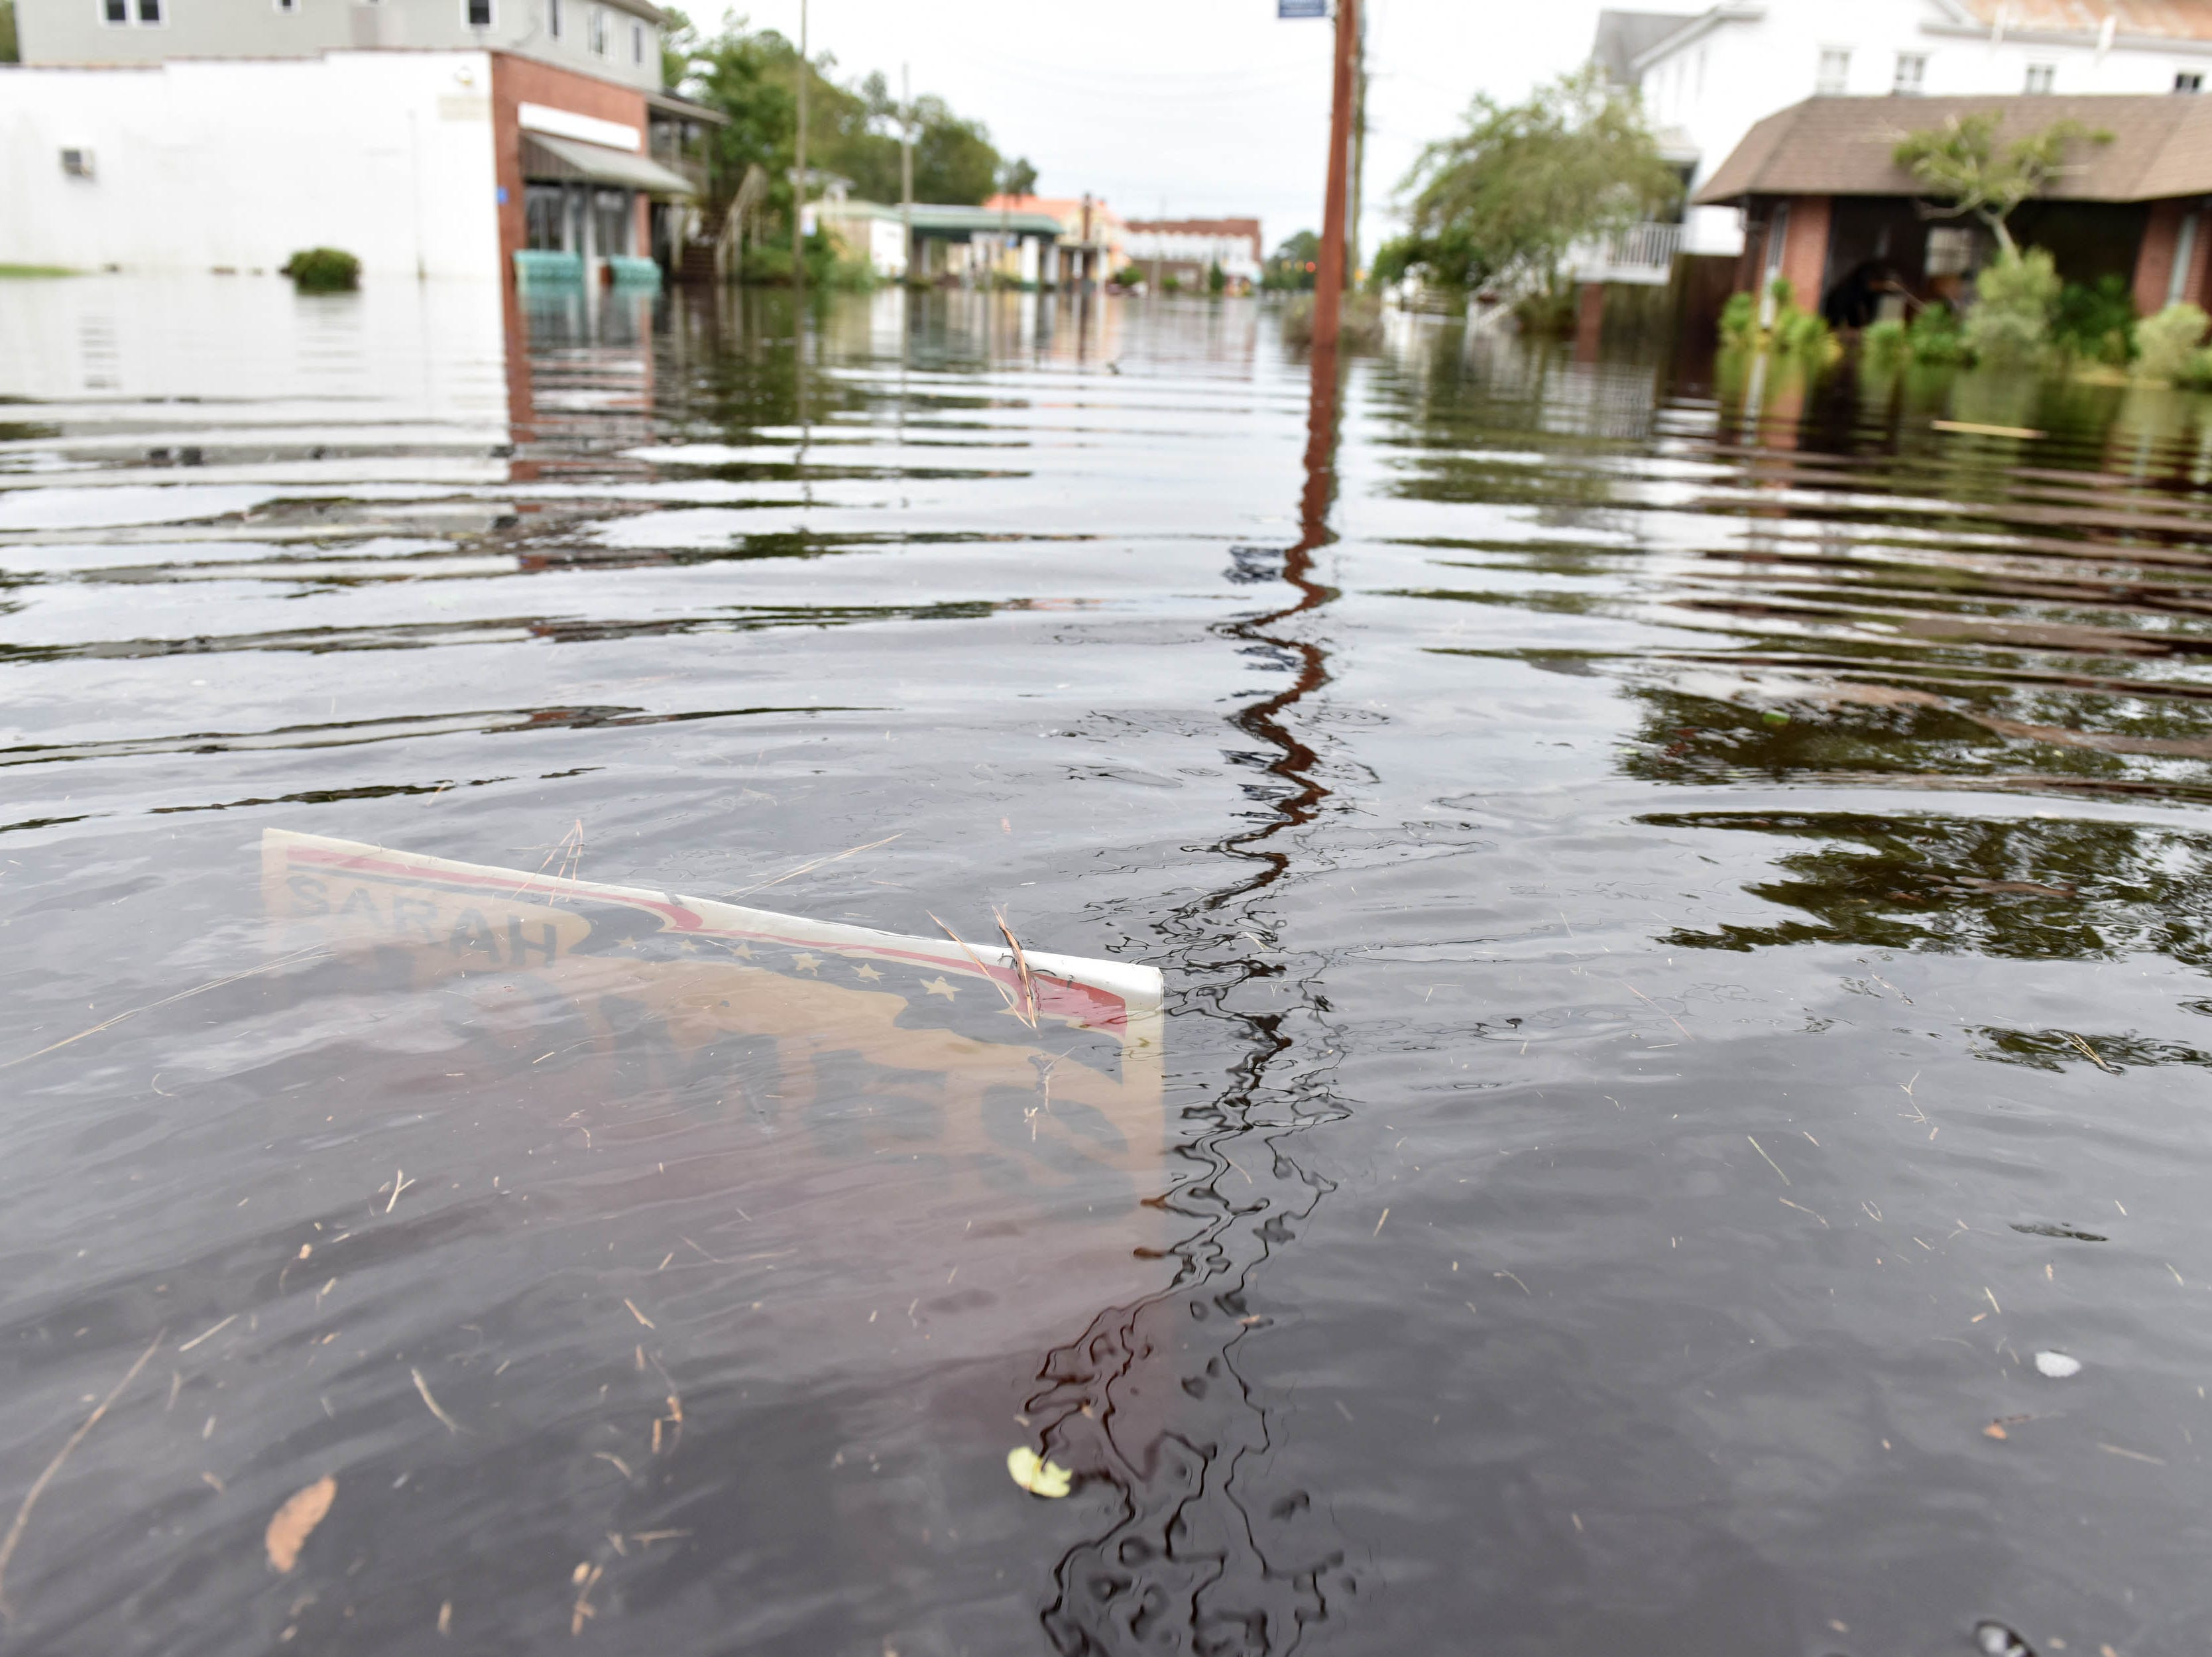 Sep 15, 2018; Belhaven, NC, USA; A campaign sign is under water on Pamlico St in Belhaven, N.C. on Saturday morning on September 15, 2018. Hurricane Florence brought a lot of rain to the area flooding the streets and home.